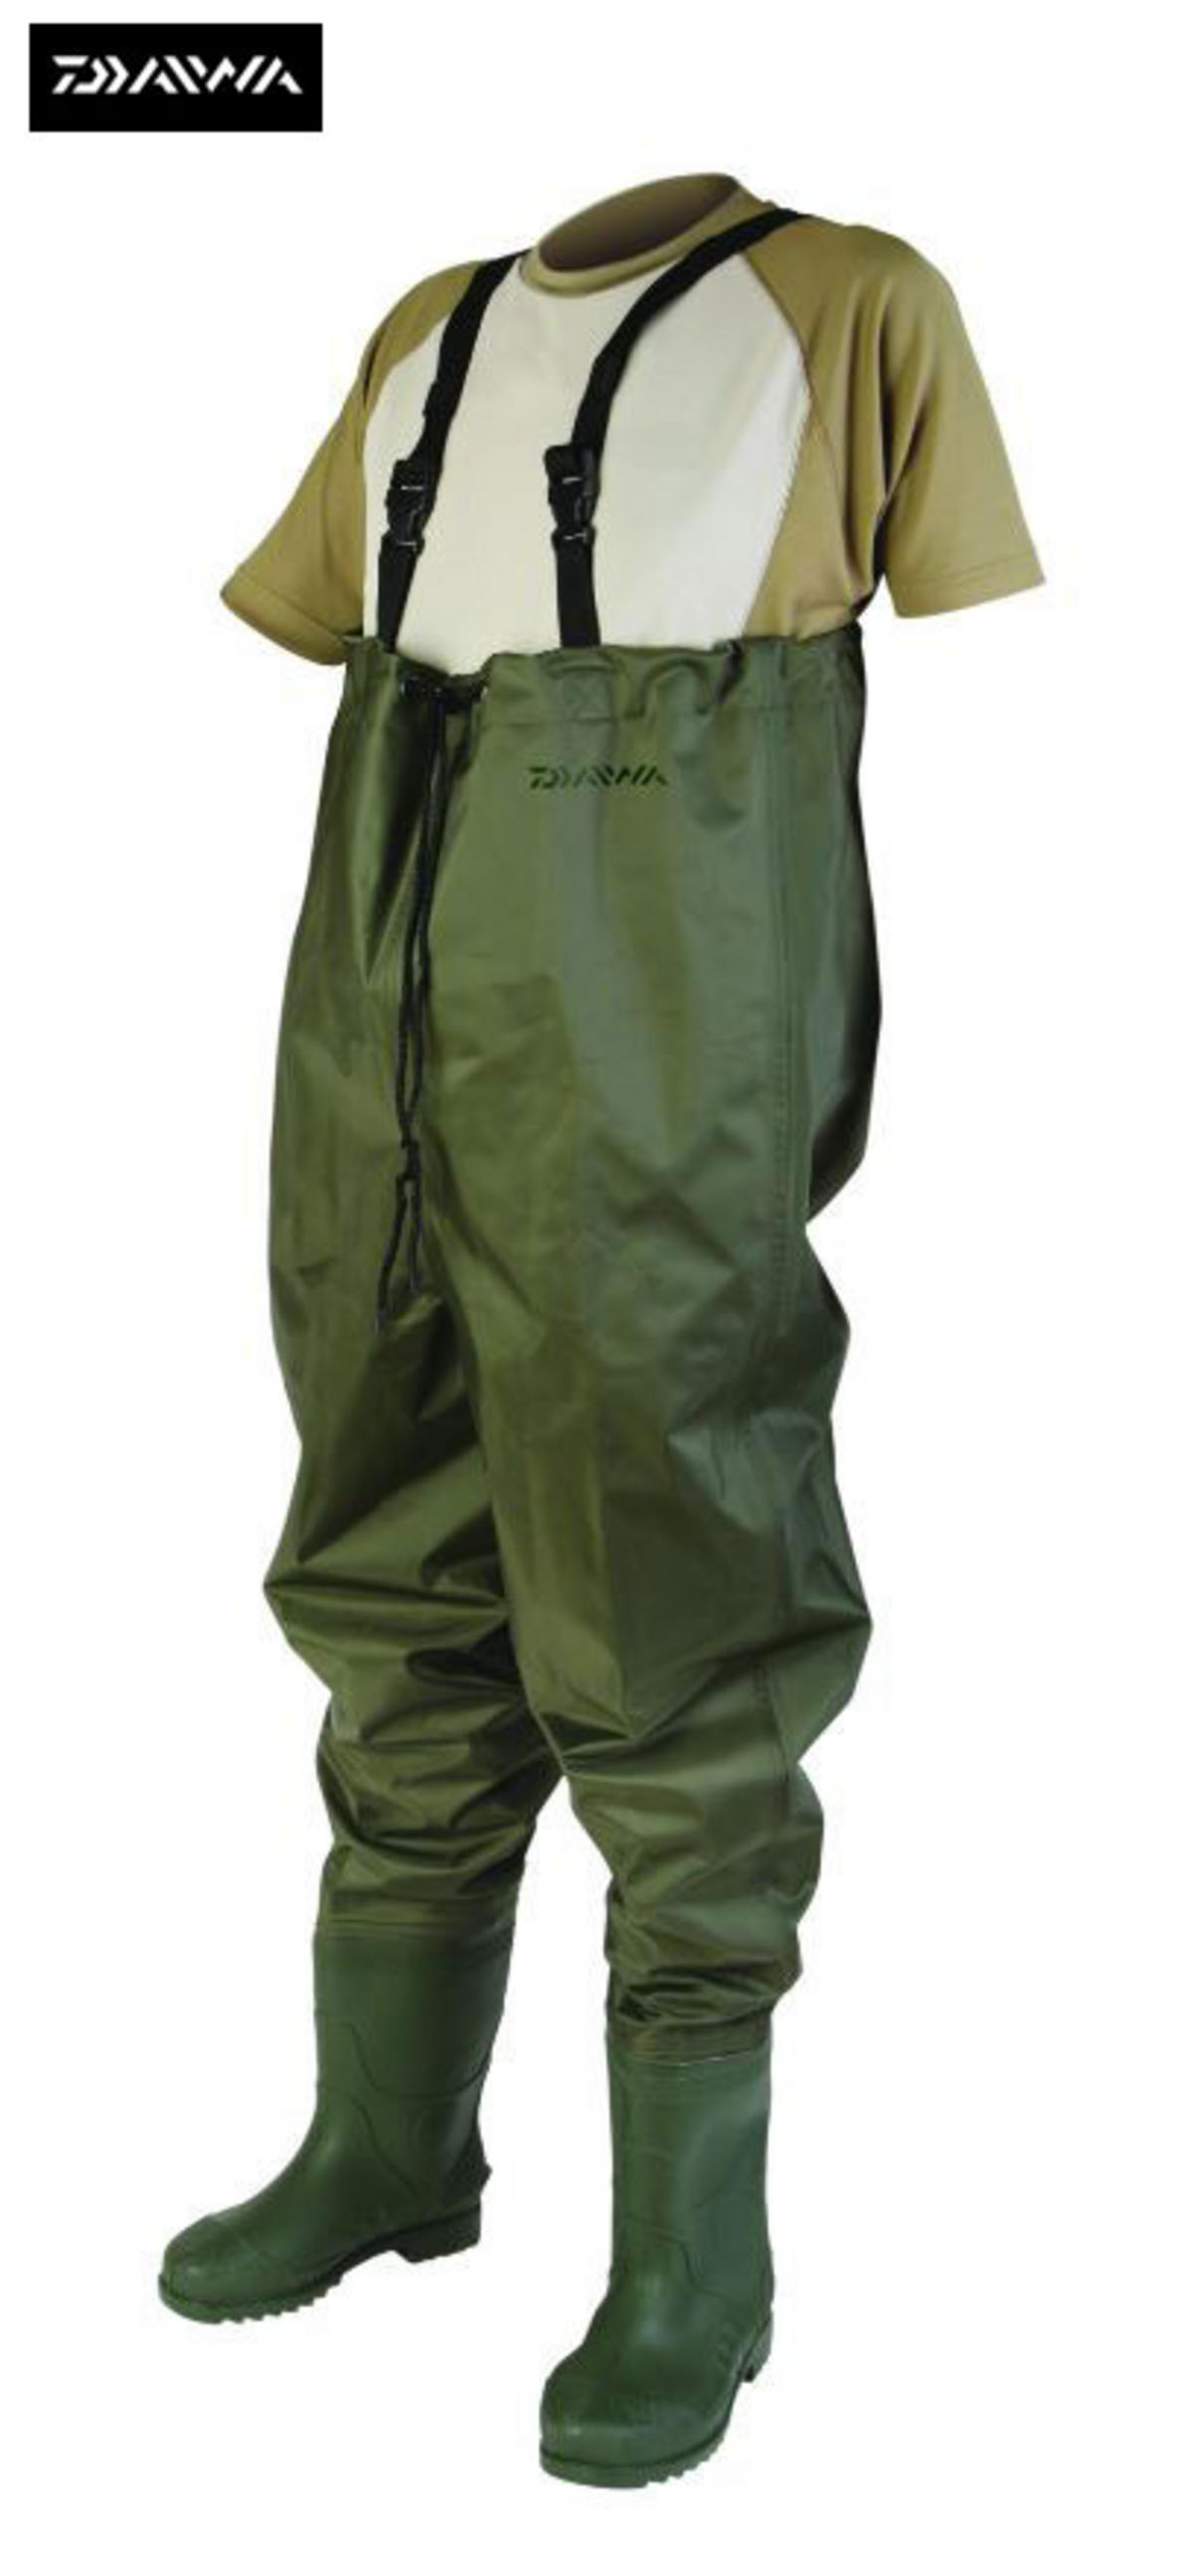 Ex Display Daiwa Lightweight Nylon Chest Waders Size 8  Model No. DNCW-8